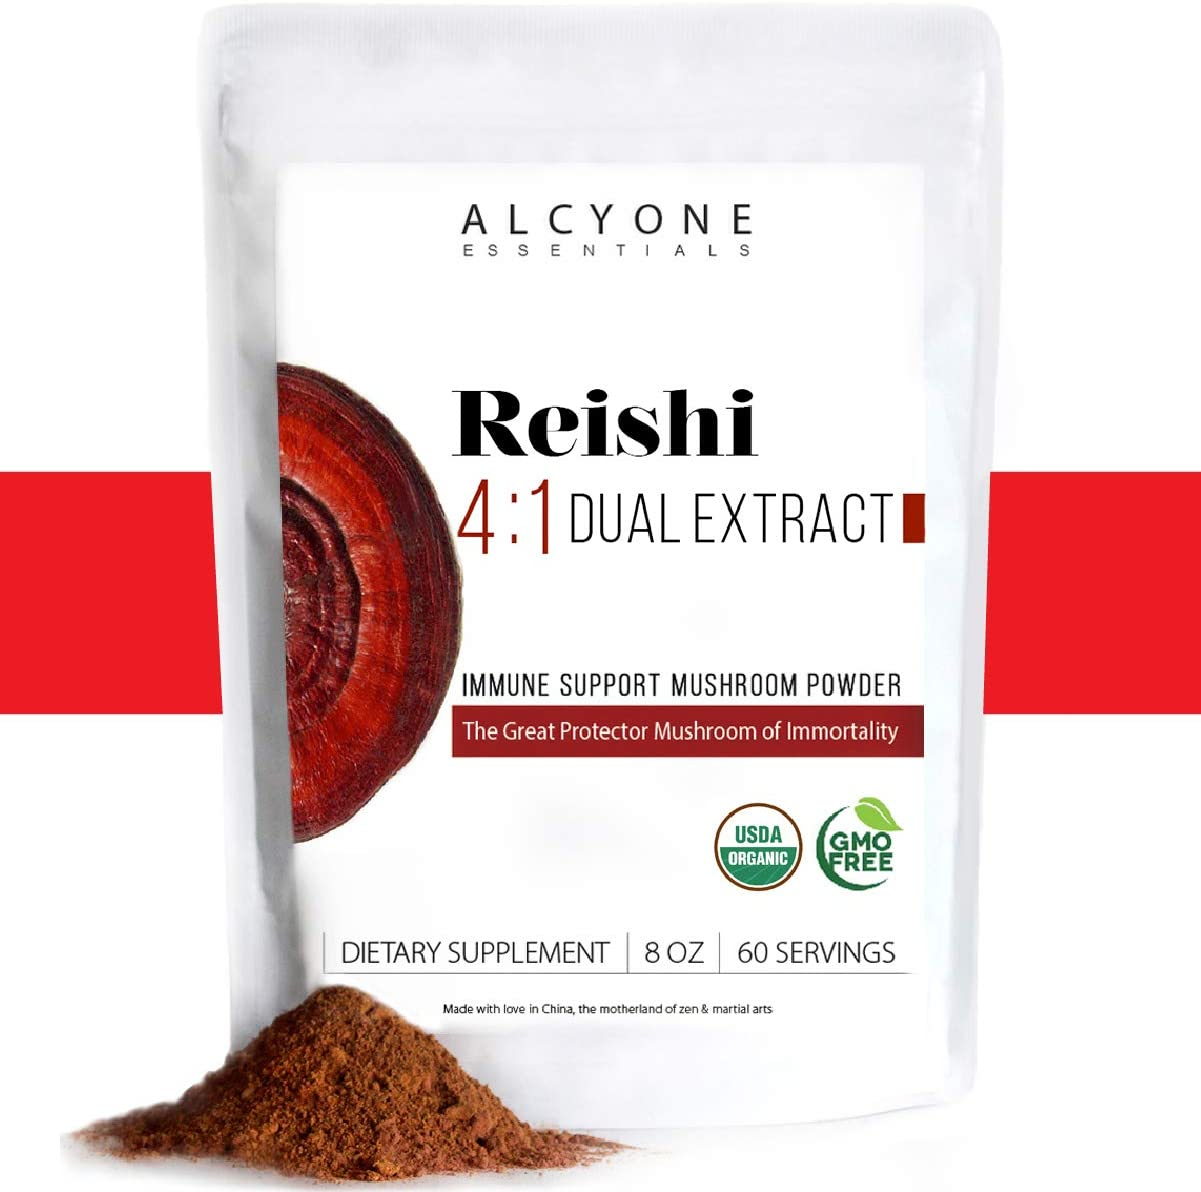 ORGANIC Red Reishi Mushroom Powder – 4 1 DUAL Extract Large 8oz Fruiting Body by Alcyone Essentials, Coffee and Tea Enhancer, Water Soluble Antioxidant Immune Booster, Calm Focus, Add to your Smooth